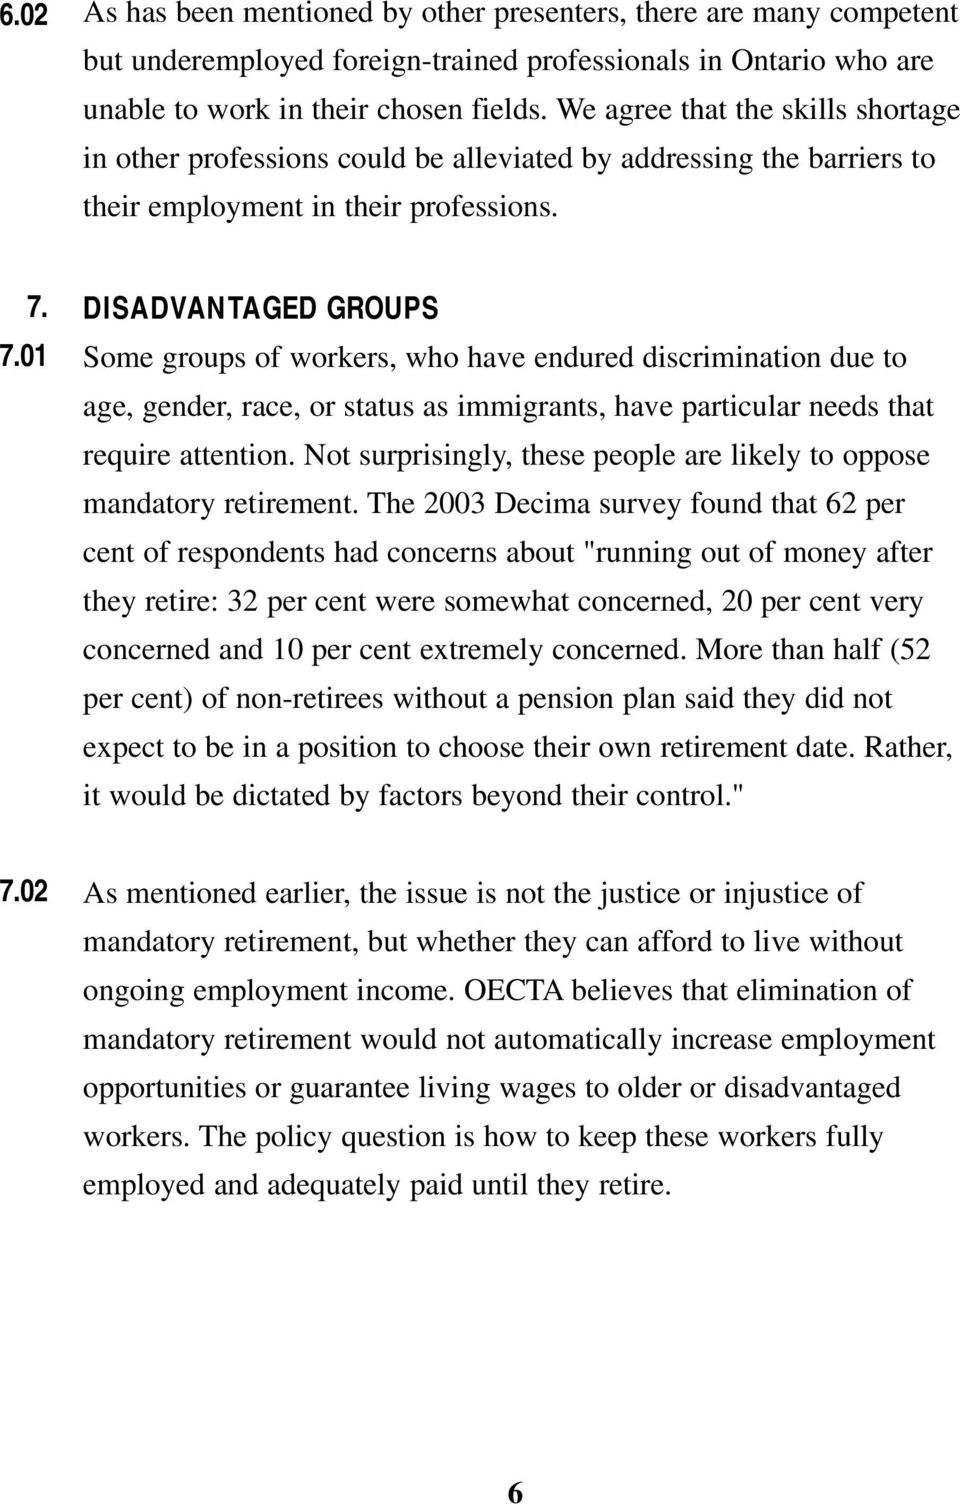 7.01 DISADVANTAGED GROUPS Some groups of workers, who have endured discrimination due to age, gender, race, or status as immigrants, have particular needs that require attention.